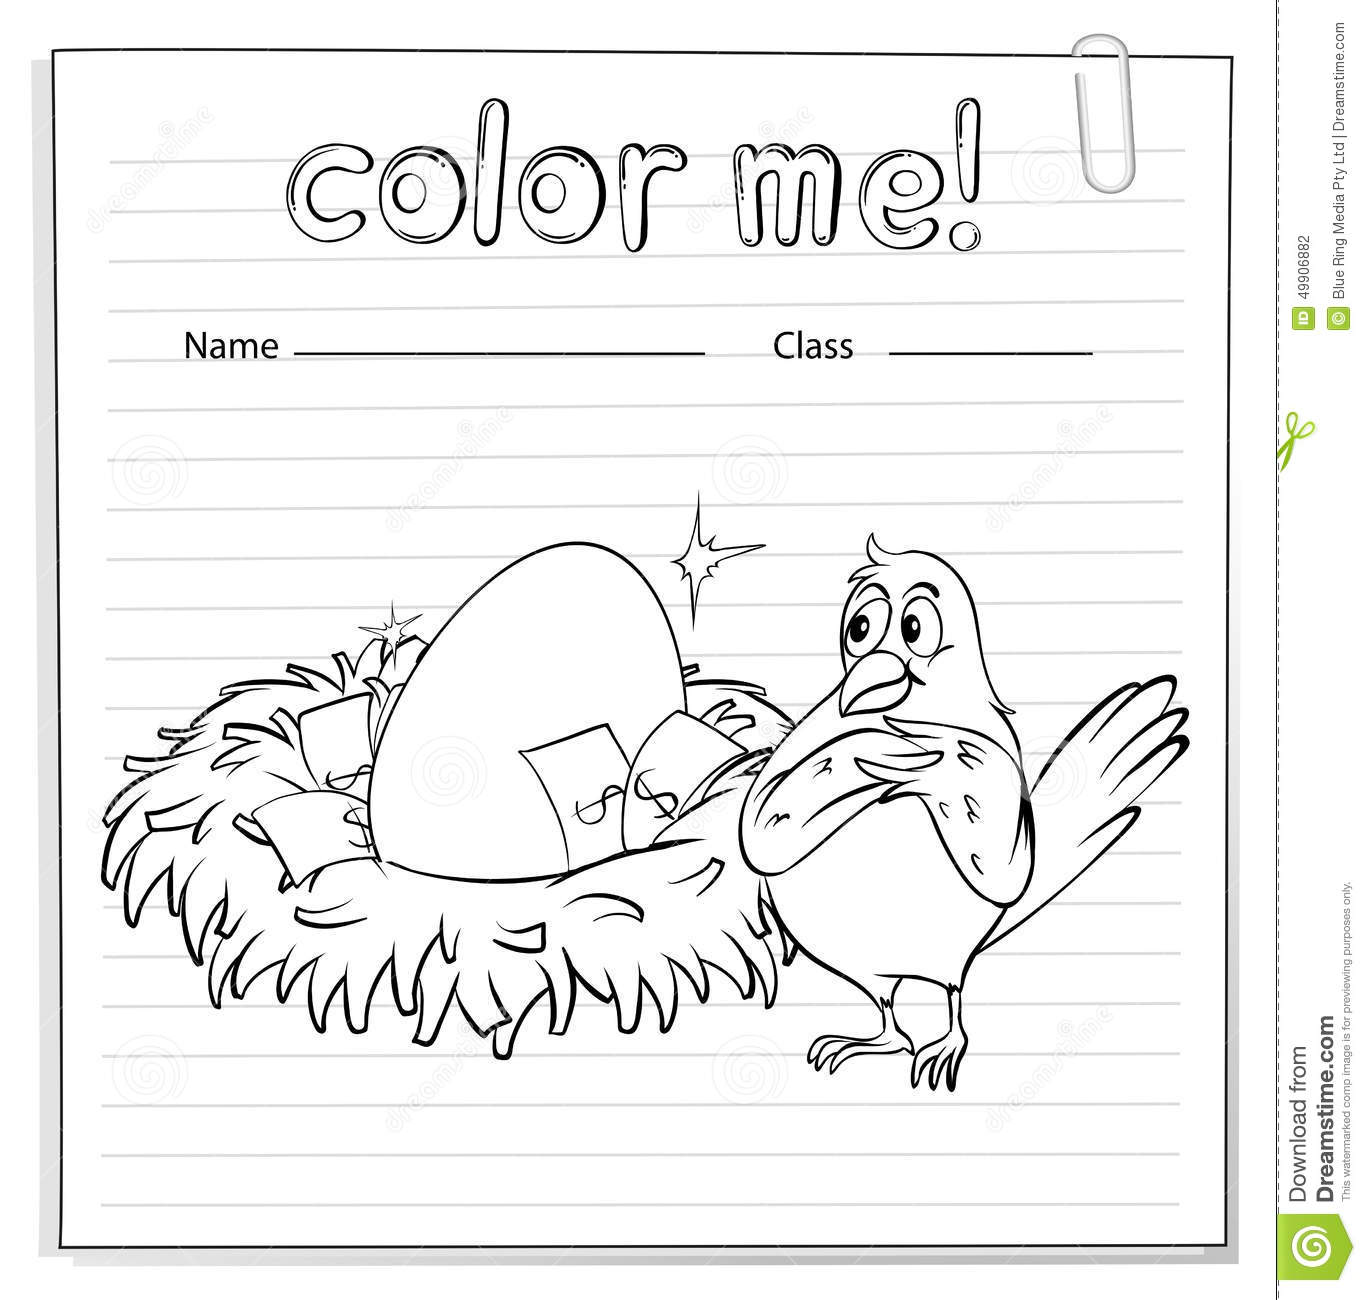 A Worksheet With A Nest And A Bird